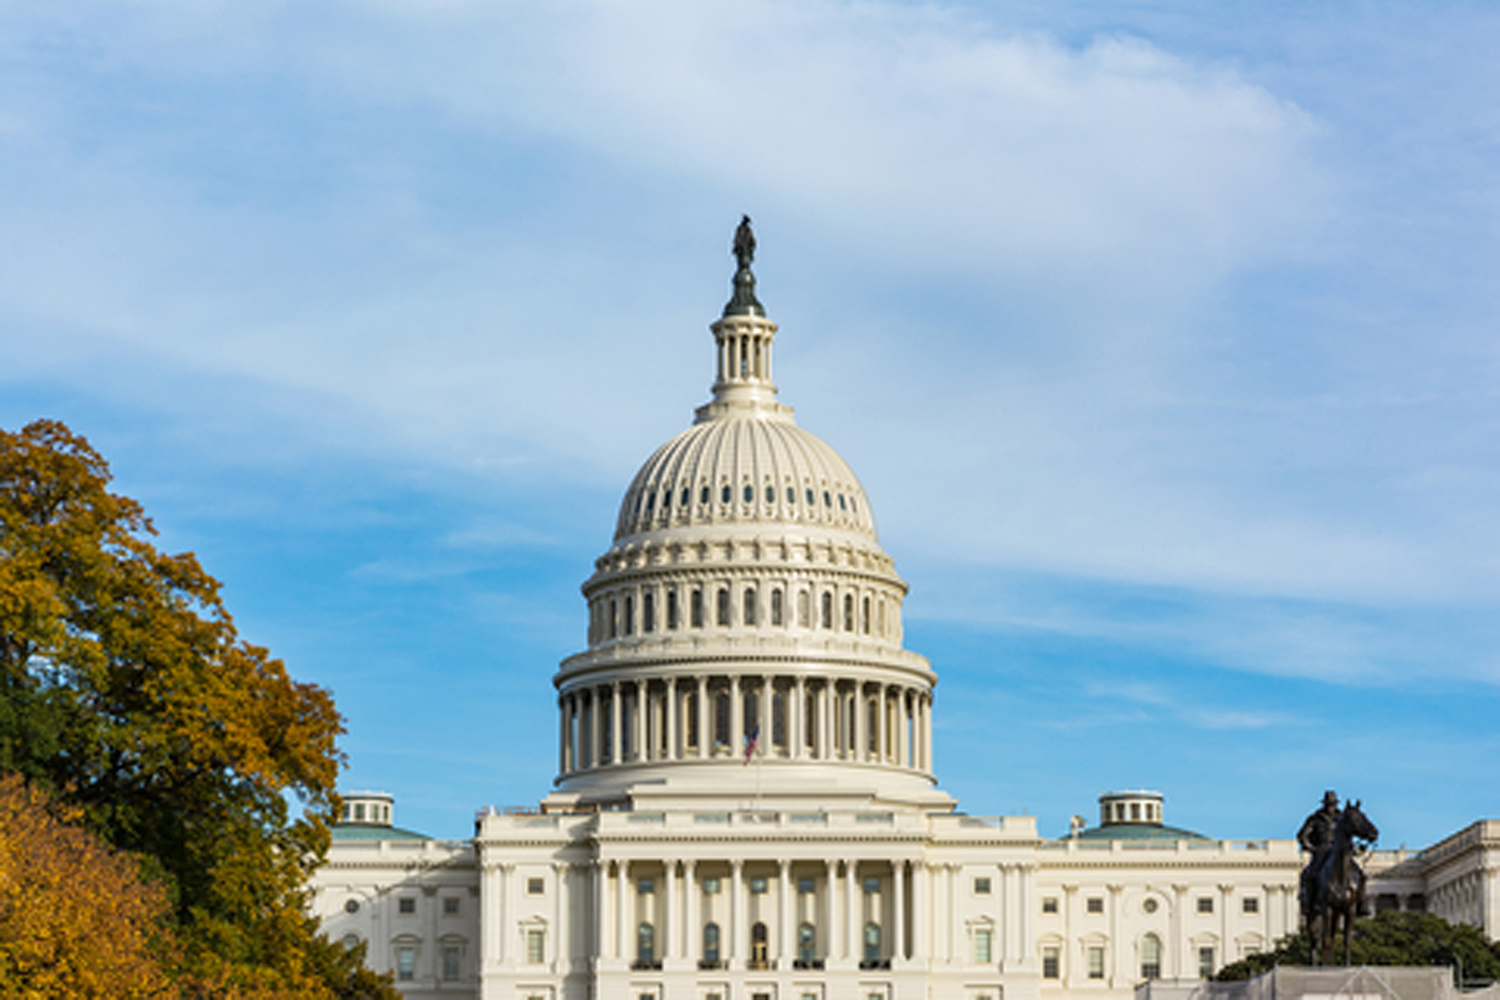 U.S. Capitol Police arrested three men on July 30, 2018, in the Senate Ohio Clock Corridor, charging them with unlawful entry and impersonating Senate staff.